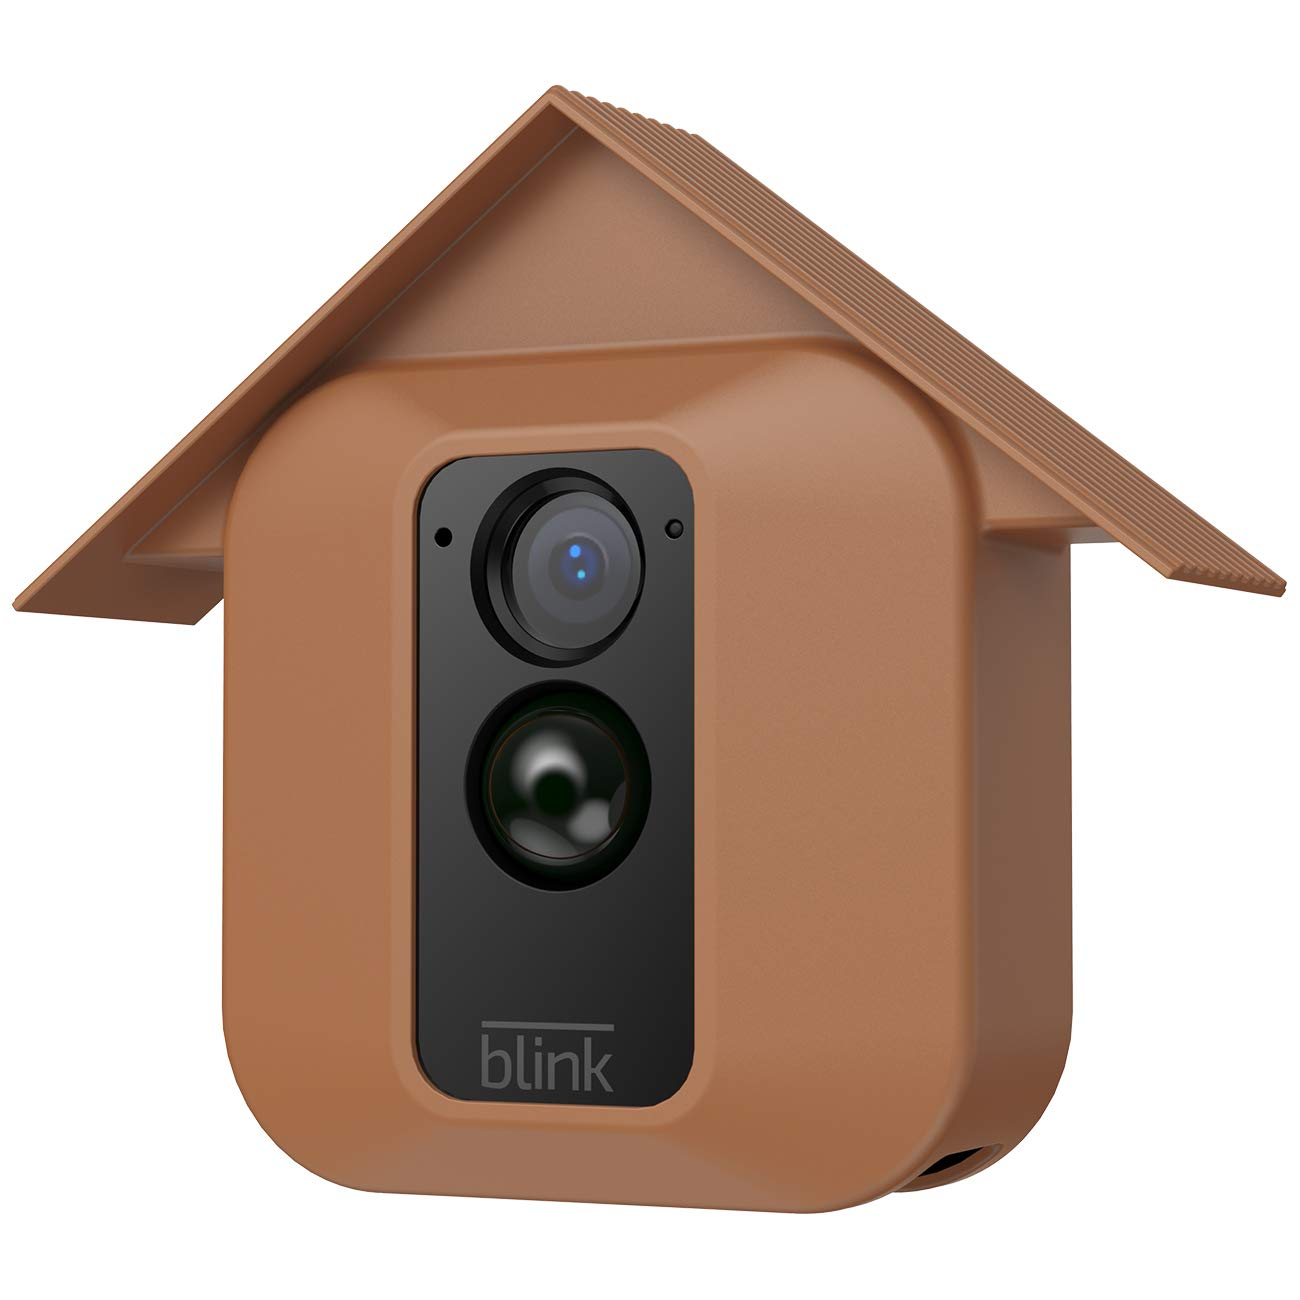 HOLACA Silicone Skin for Blink Home Security- Silicon Case for Blink XT Blink XT2 Outdoor Camera - Anti-Scratch Protective Cover - Extra Protection (1 Pack, Brown)